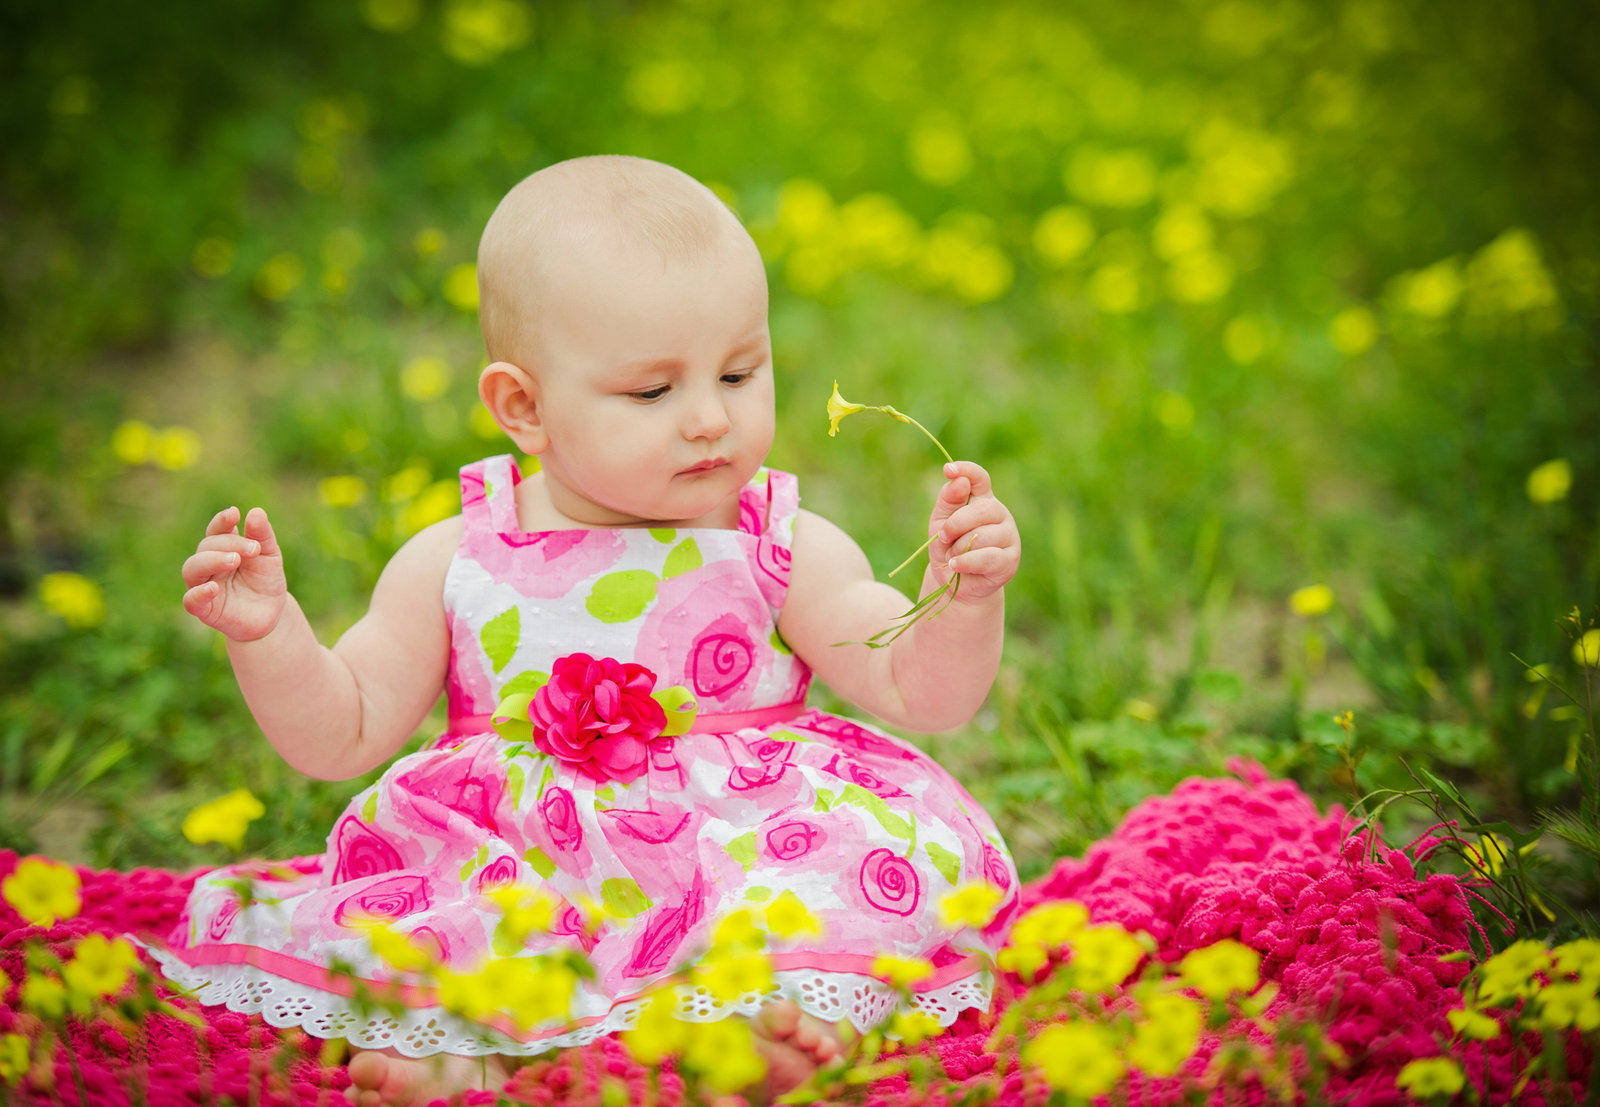 baby in floral dress holding flower